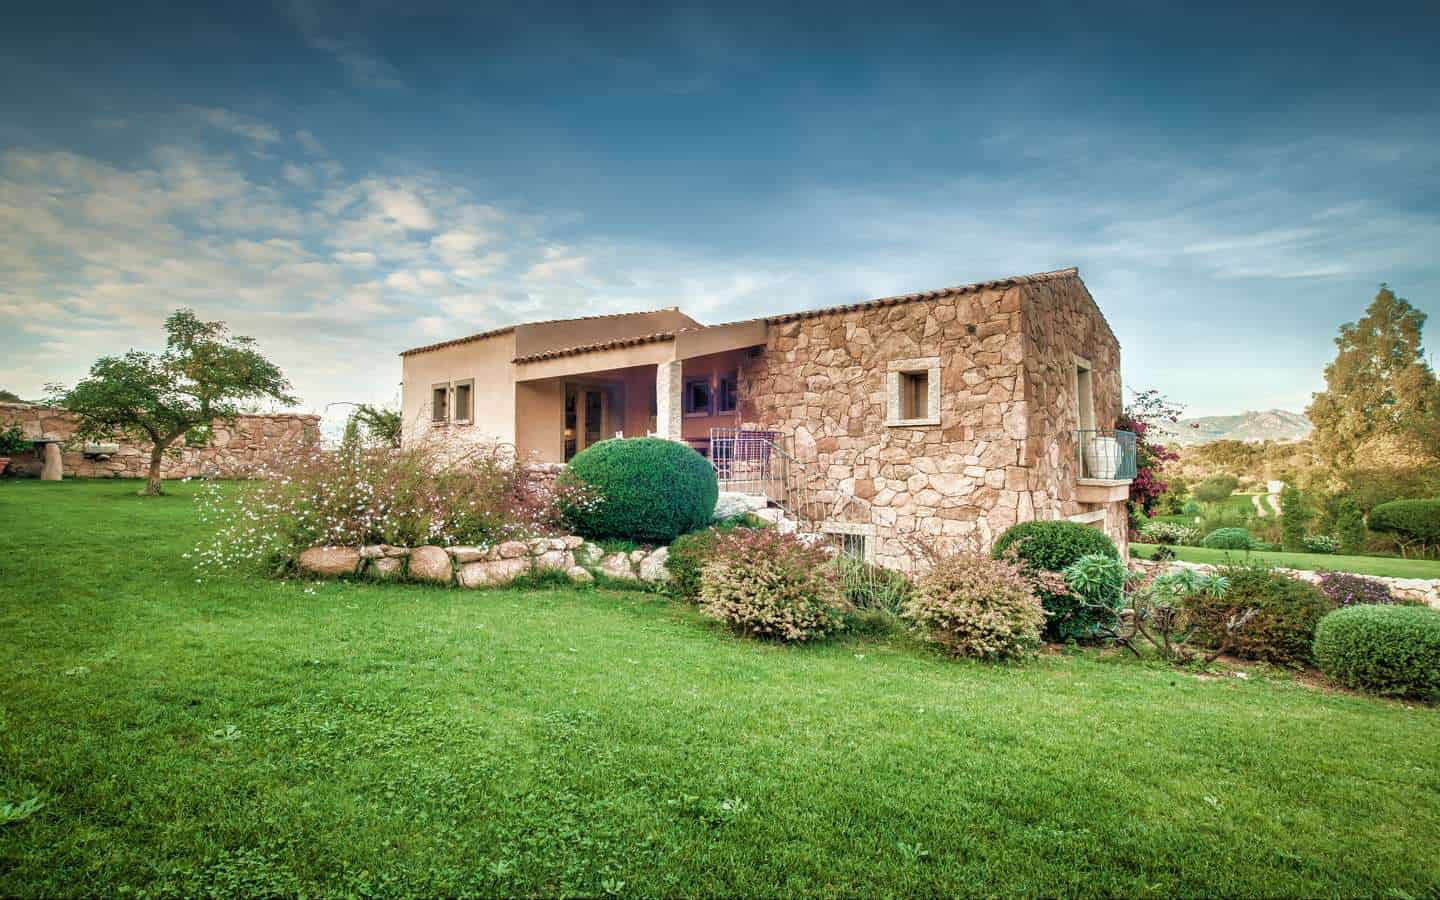 Restored Villa For Sale In San Pantaleo, Costa Smeralda